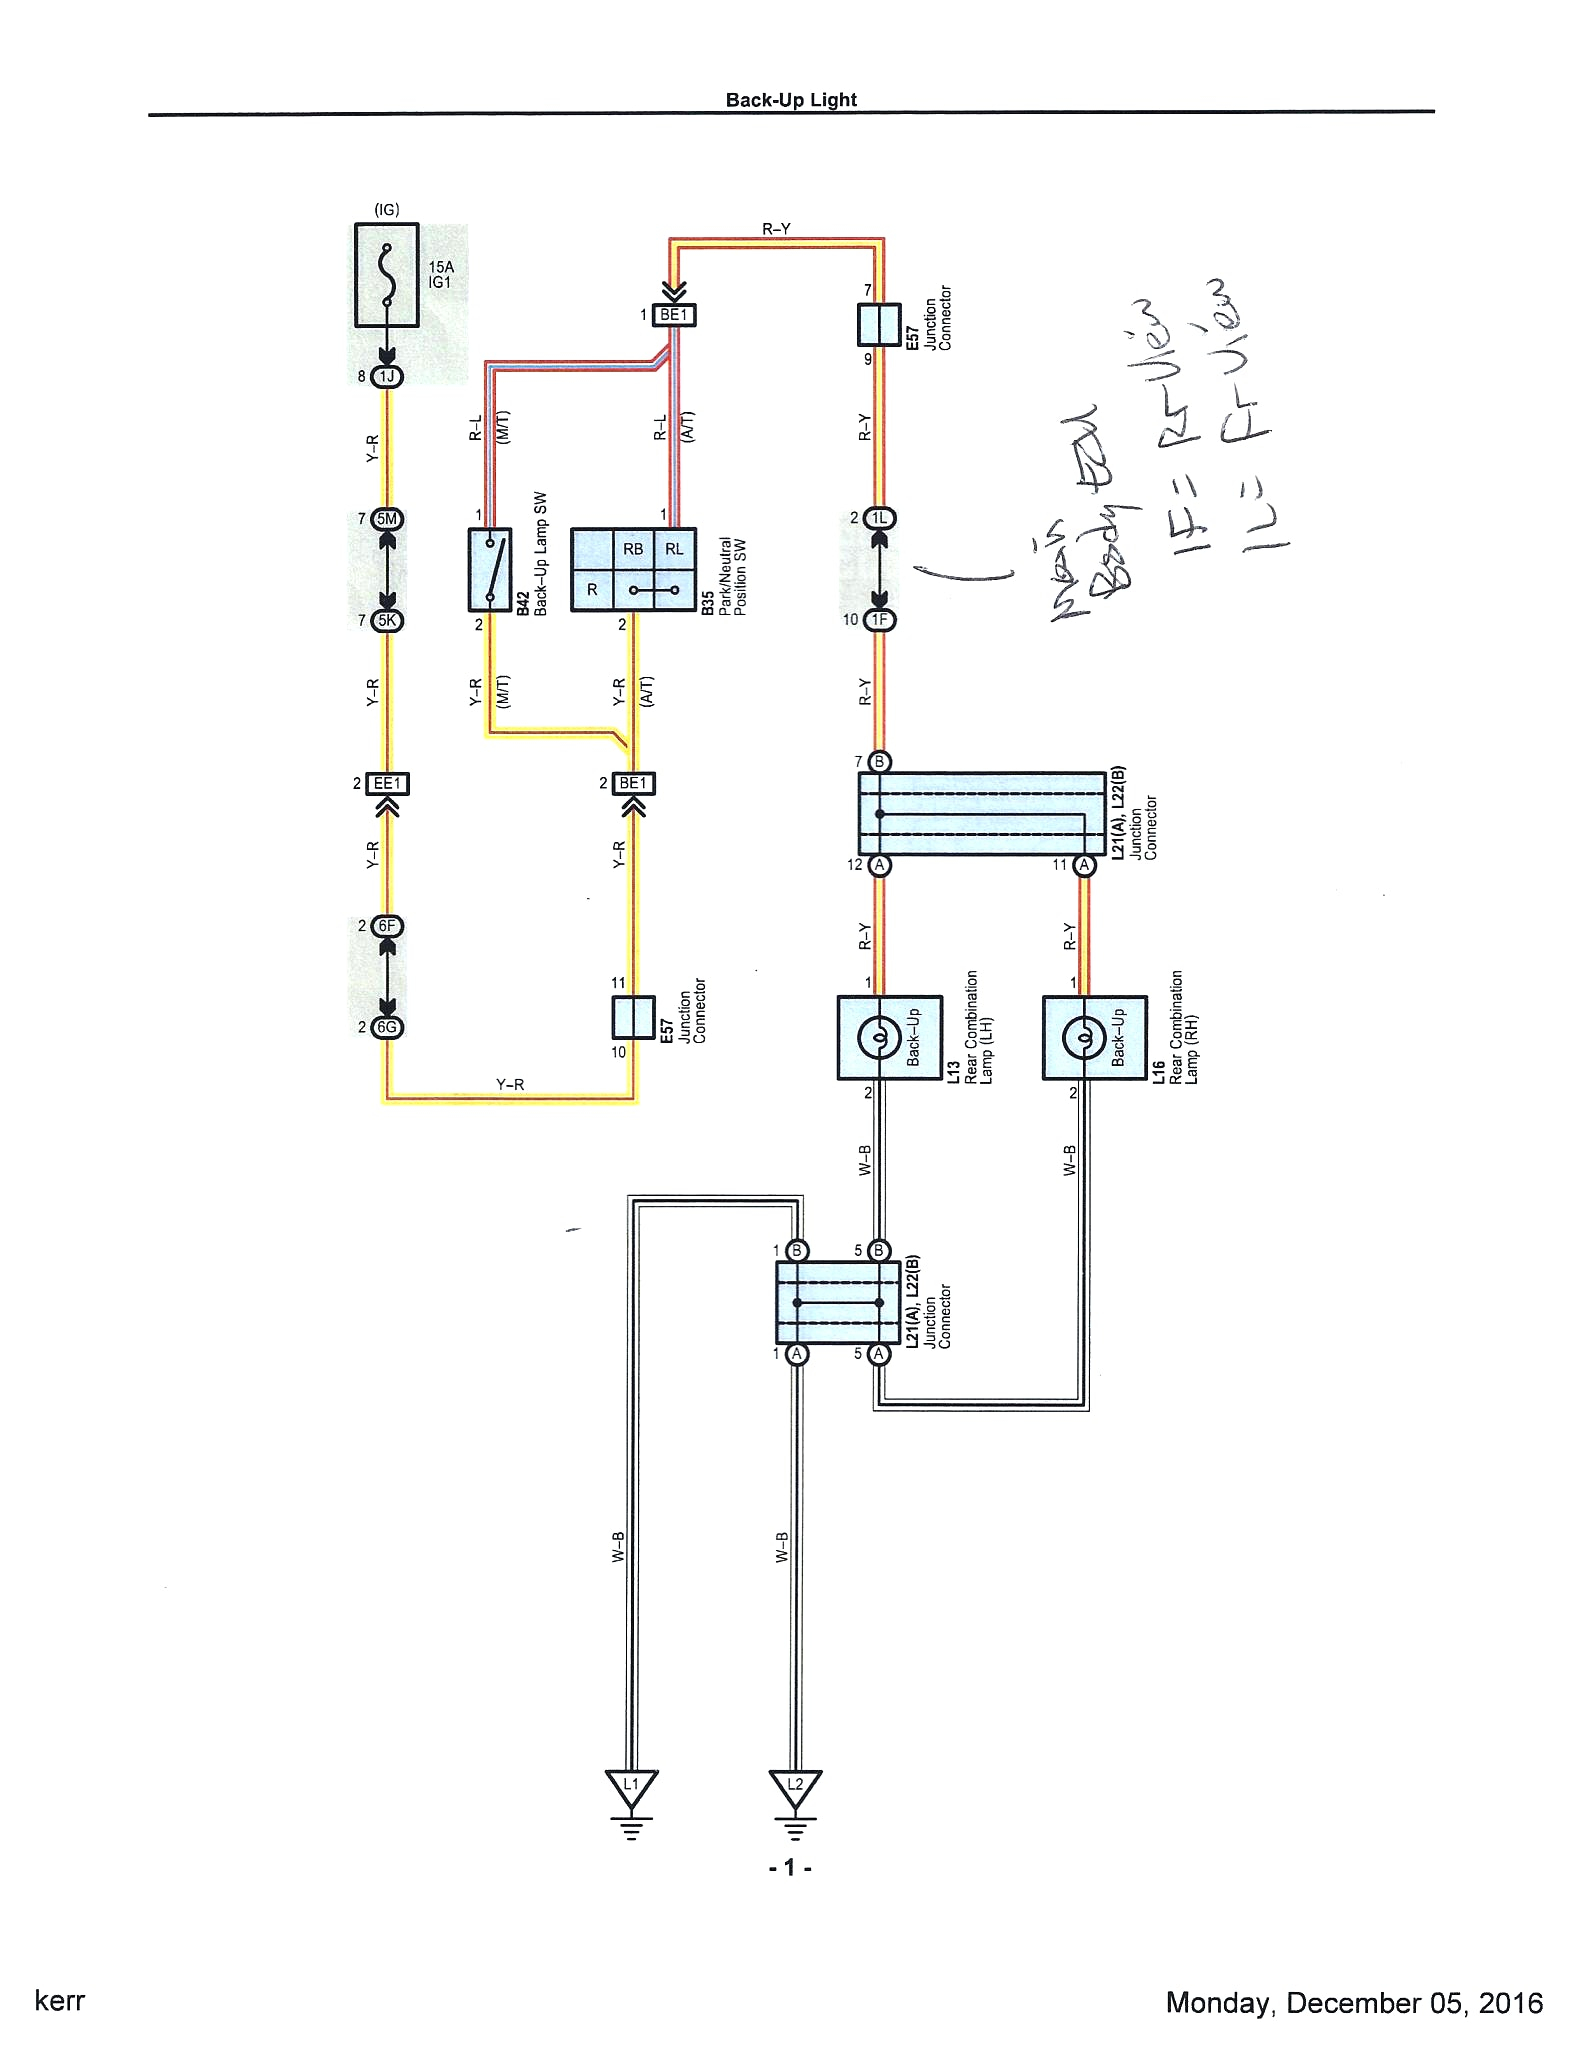 35 Leekooluu Backup Camera Wiring Diagram